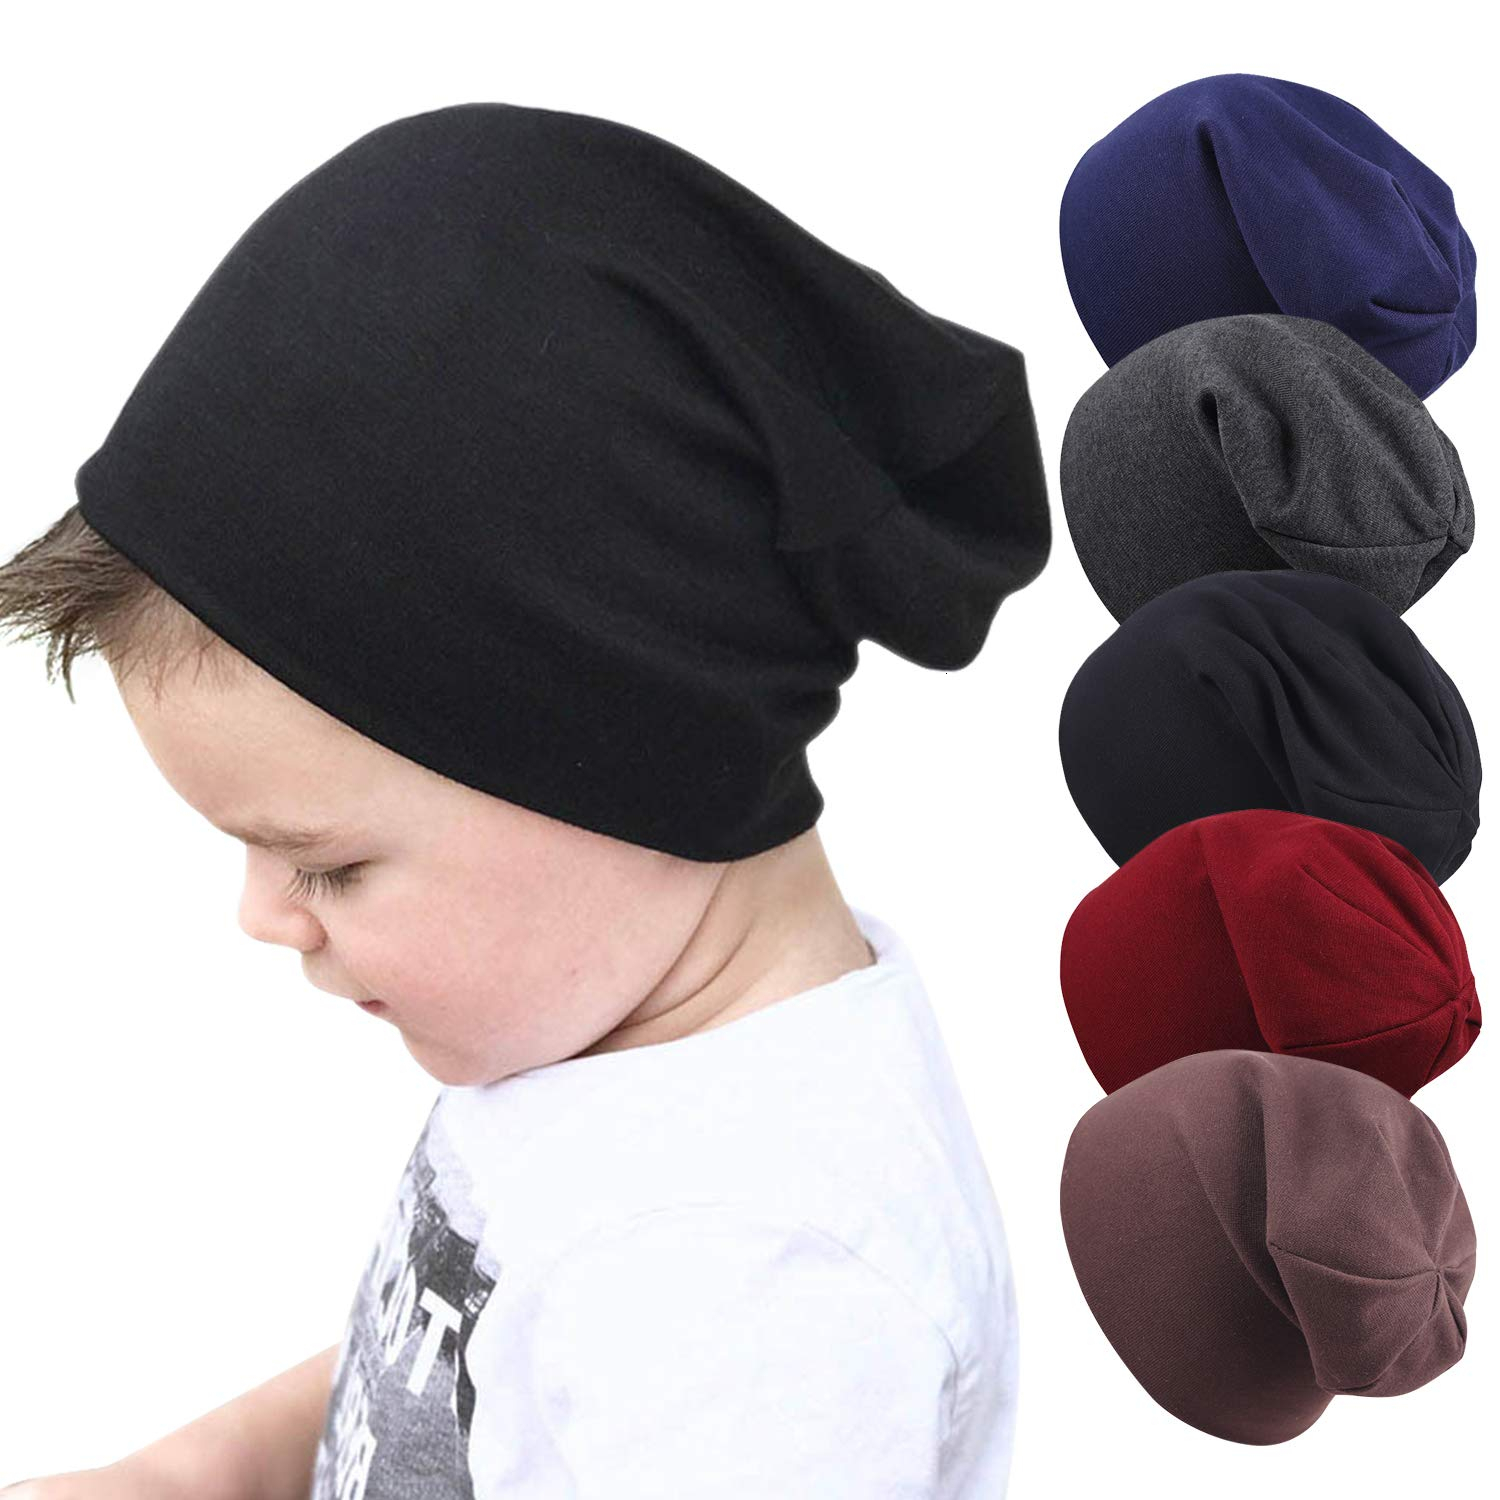 XPeople Infant Toddler Baby Unisex Cotton Soft Cute Lovely Newborn Kids Hat Beanies Caps Baby Beanie For Boys Girls